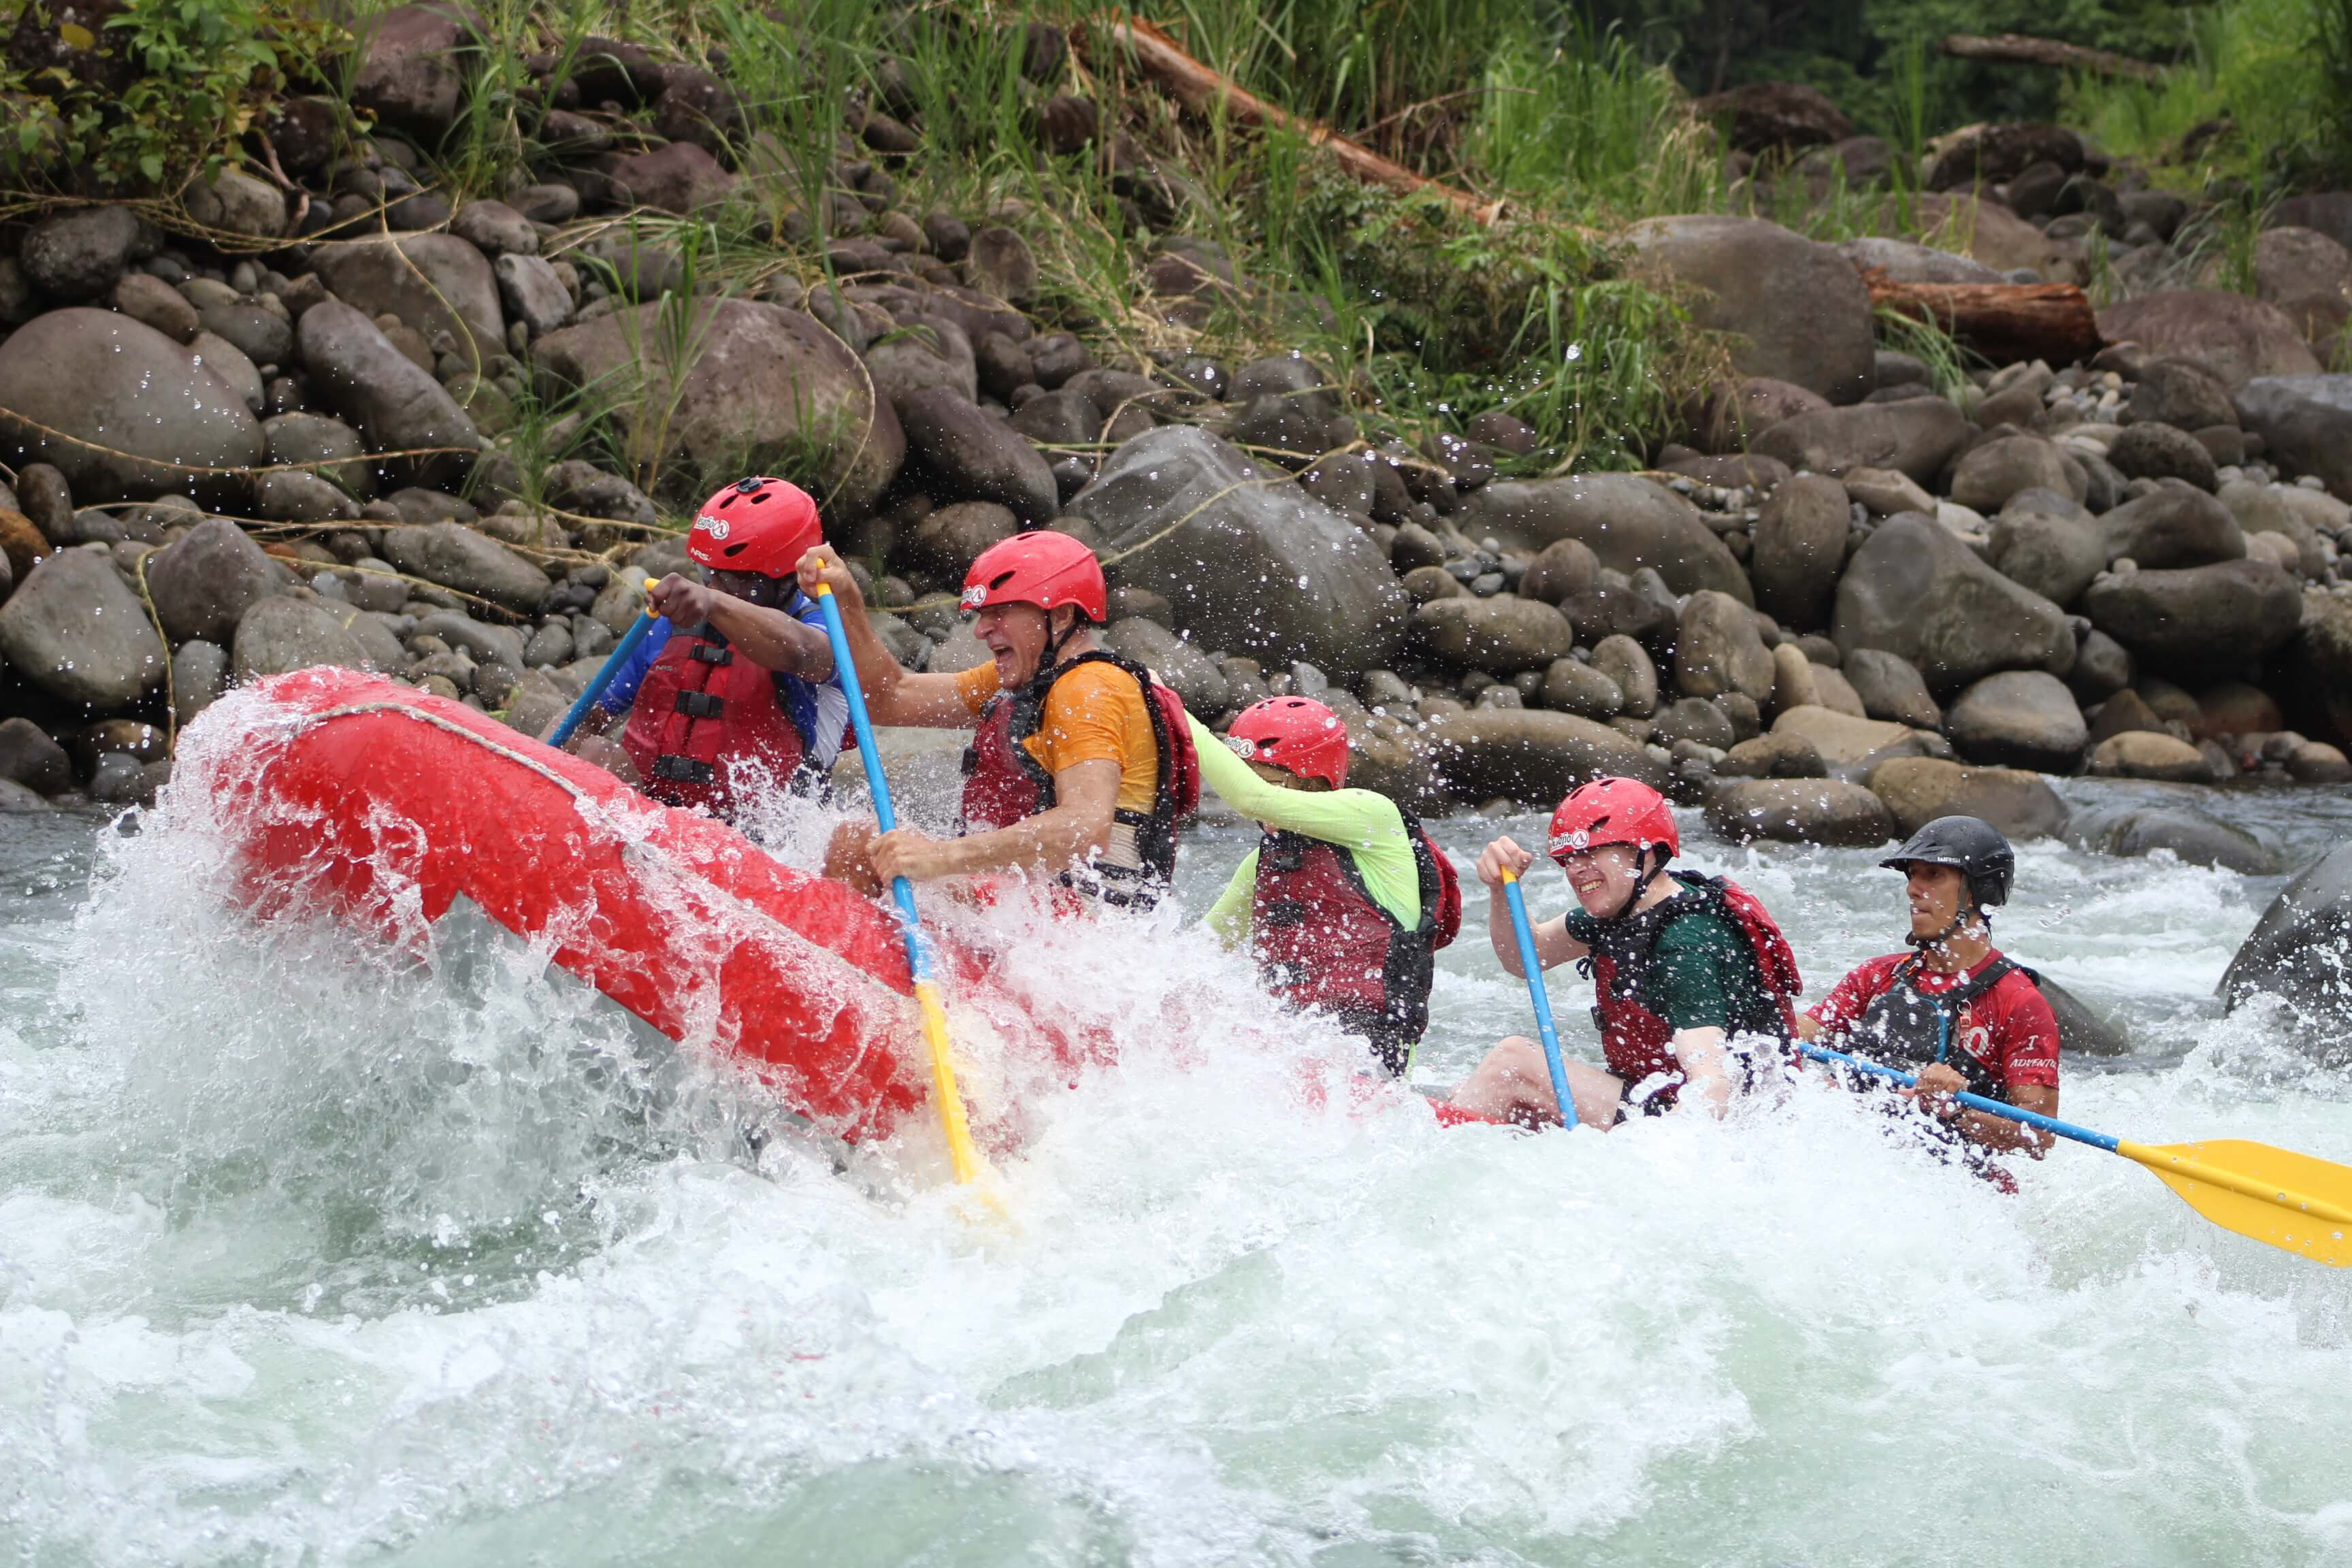 You will love this extreme white waterrafting trip in Costa Rica on the Sarapiqui River.